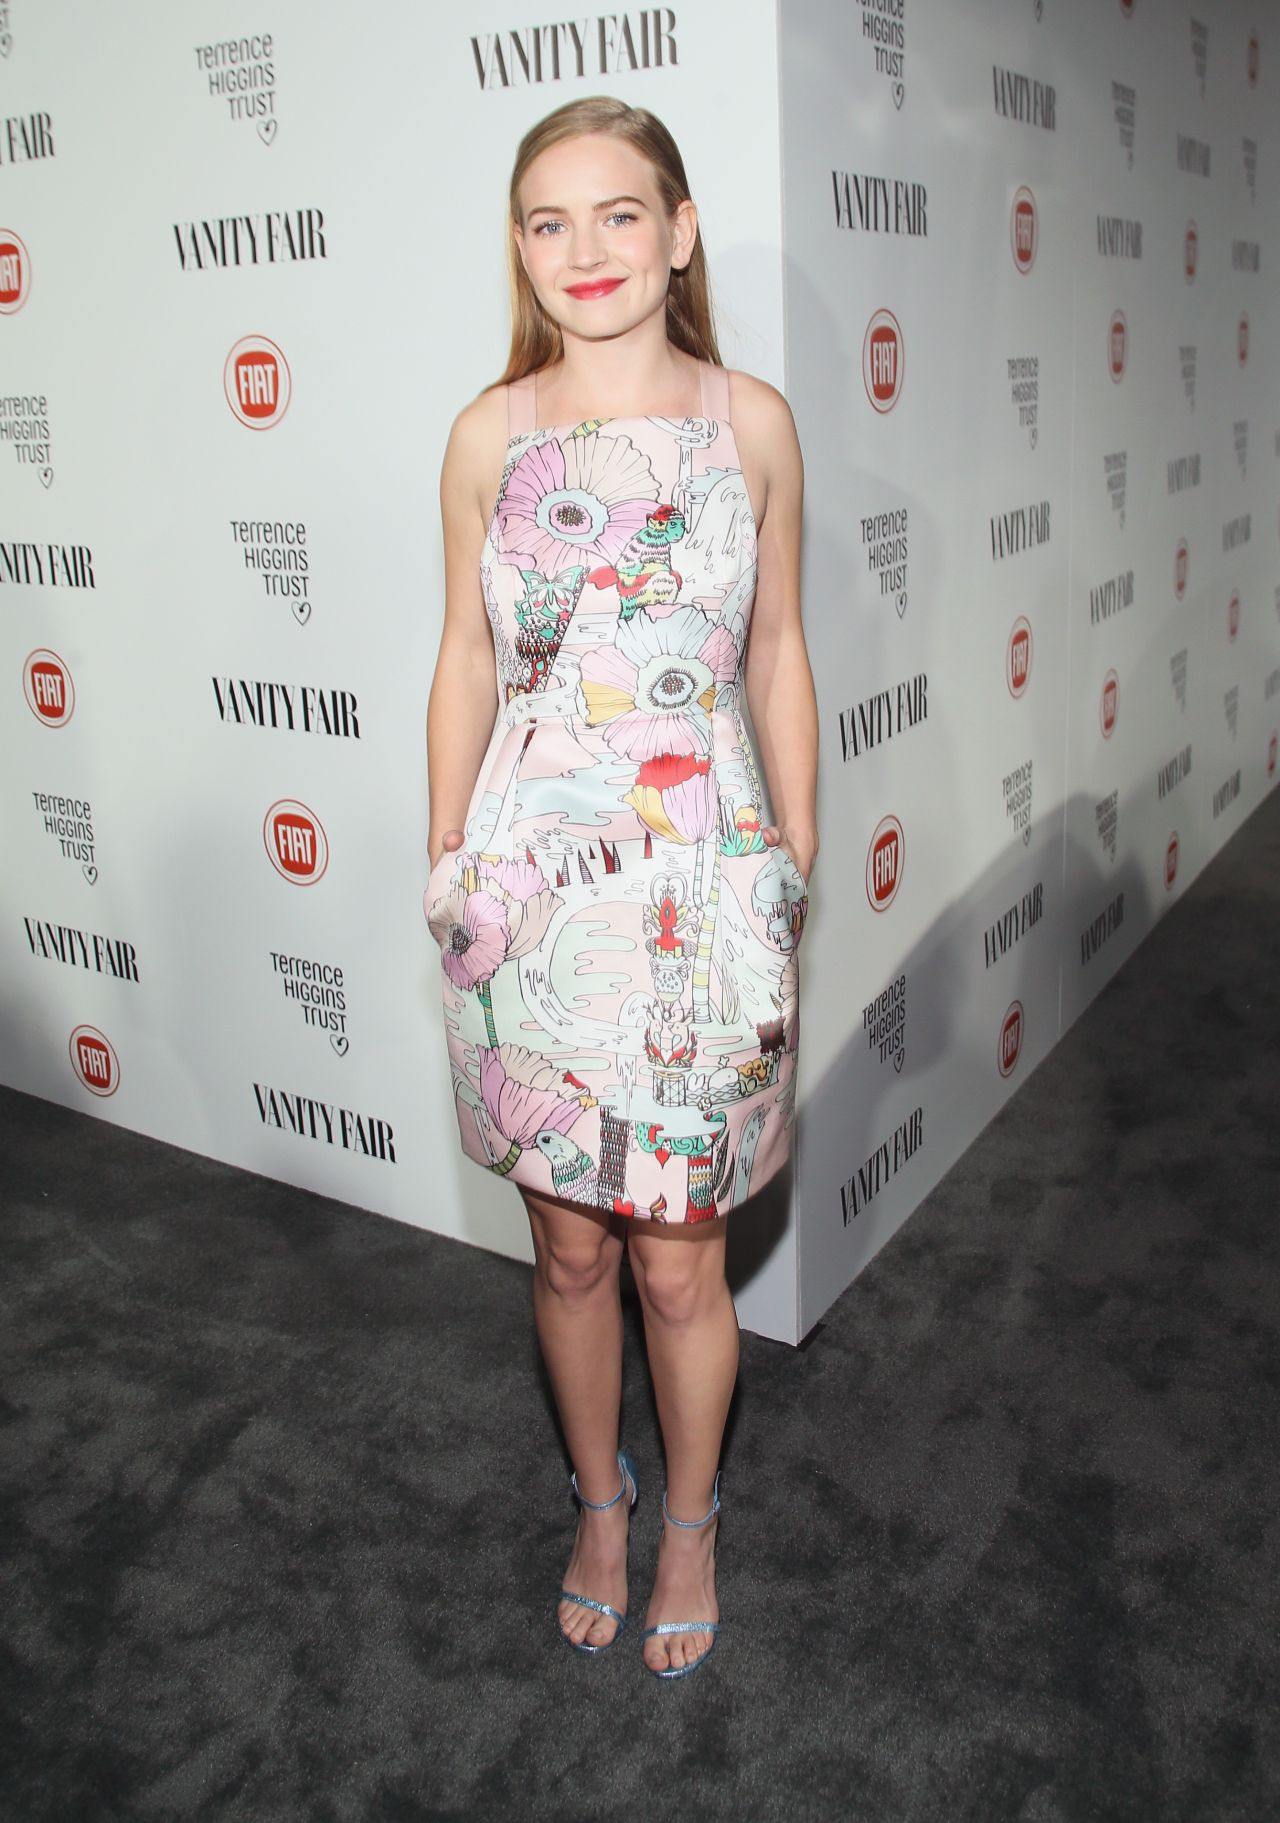 Britt Robertson – Vanity Fair and FIAT celebration of Young Hollywood in Los Angeles, February 2015